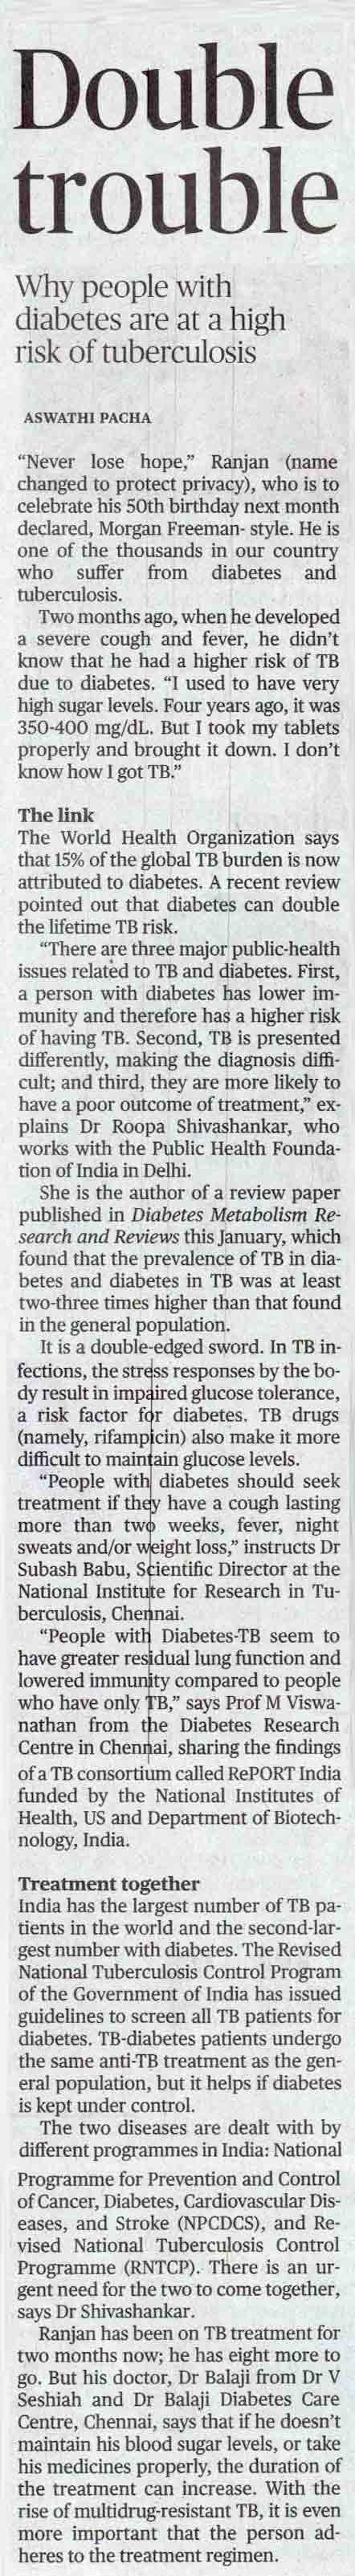 Taming the double trouble of Tuberculosis and diabetes